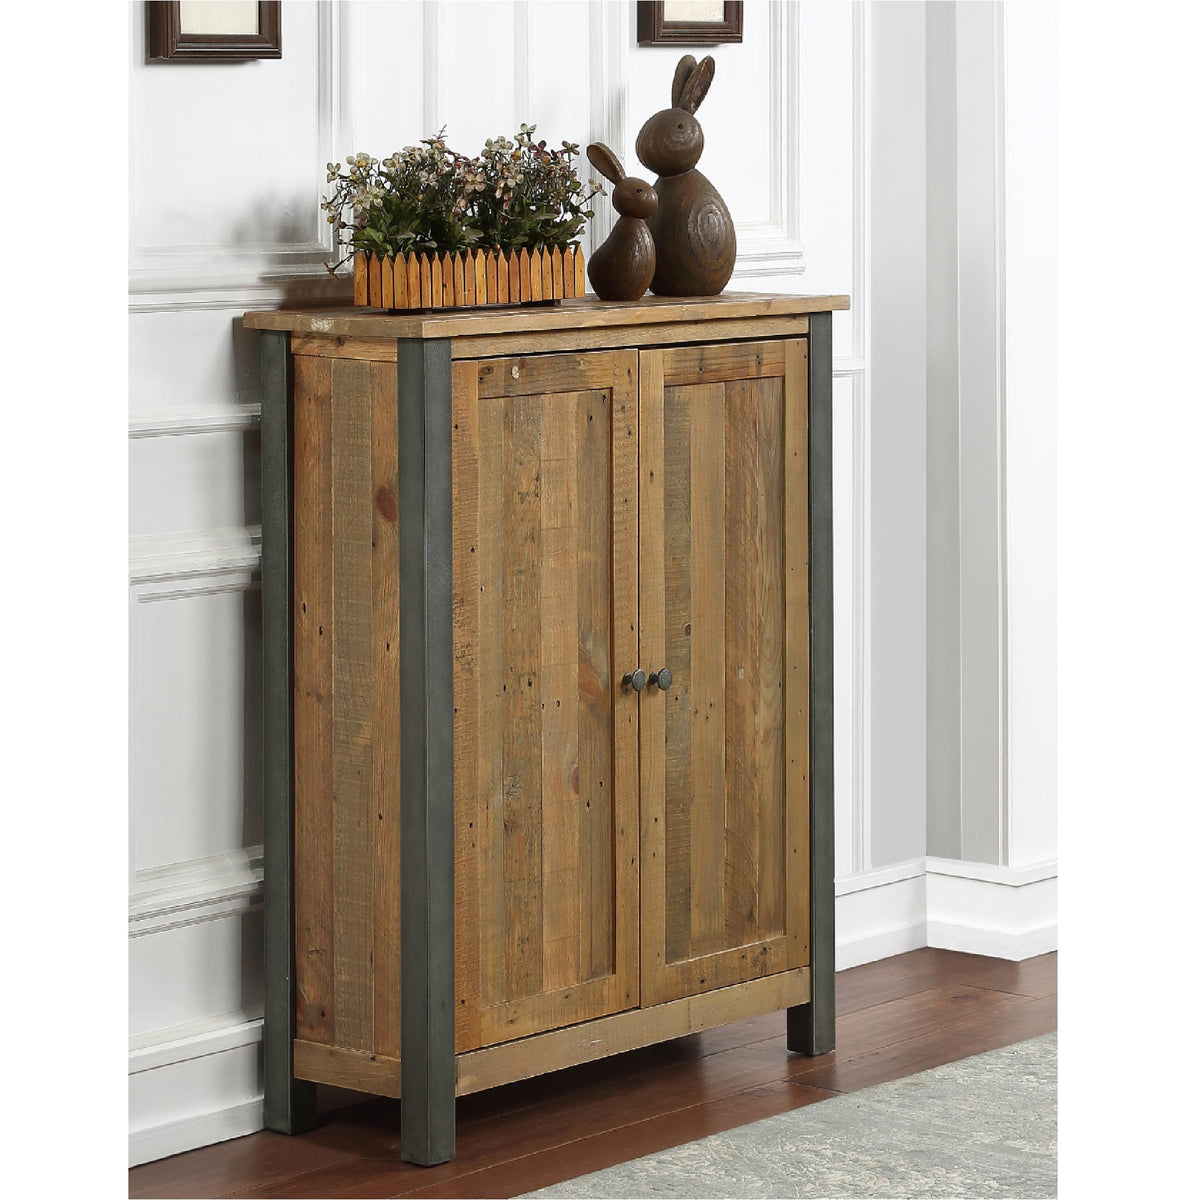 Urban Elegance Reclaimed Wood Shoe Storage Cupboard